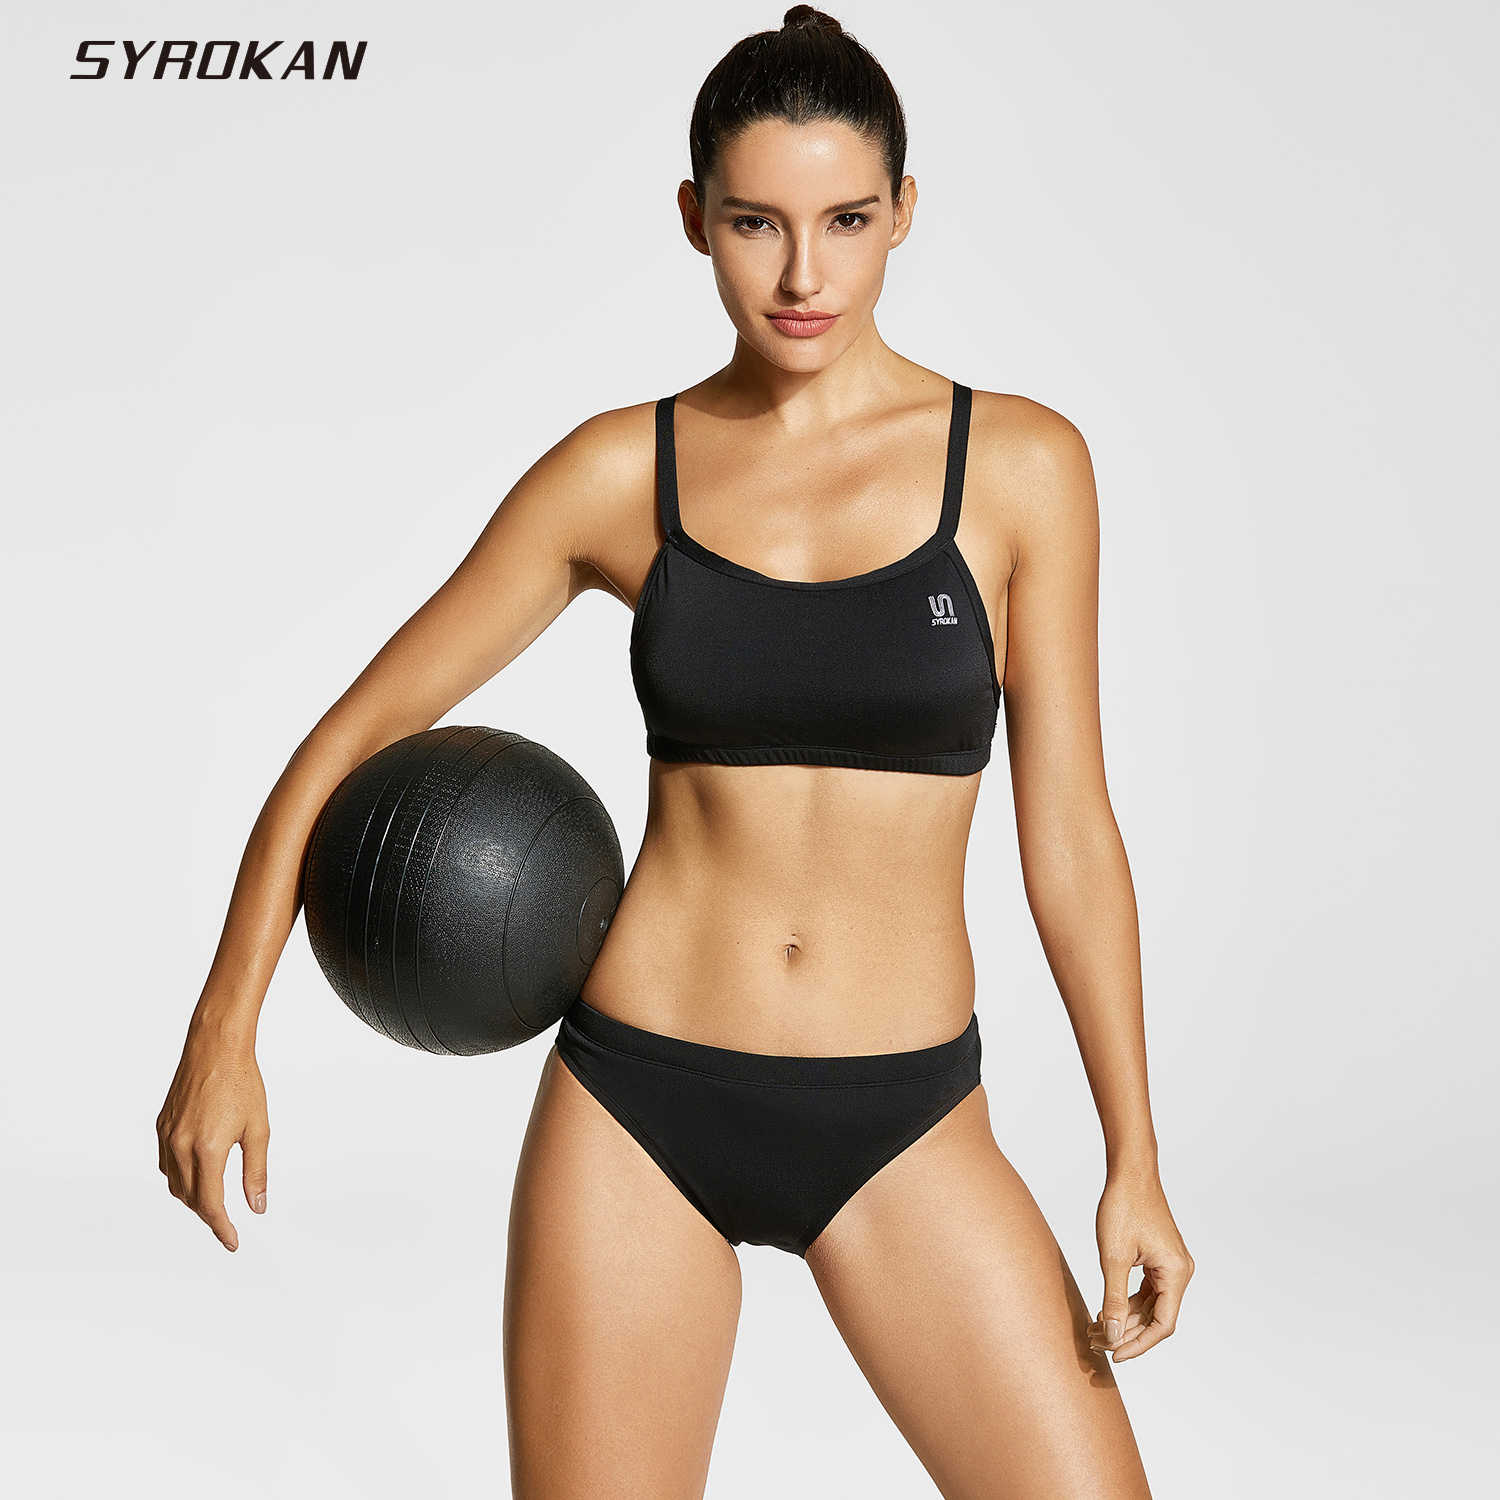 018e50de277 Detail Feedback Questions about SYROKAN Women's Athletic Bikini Workout Two  Piece Sport Swimsuit on Aliexpress.com | alibaba group